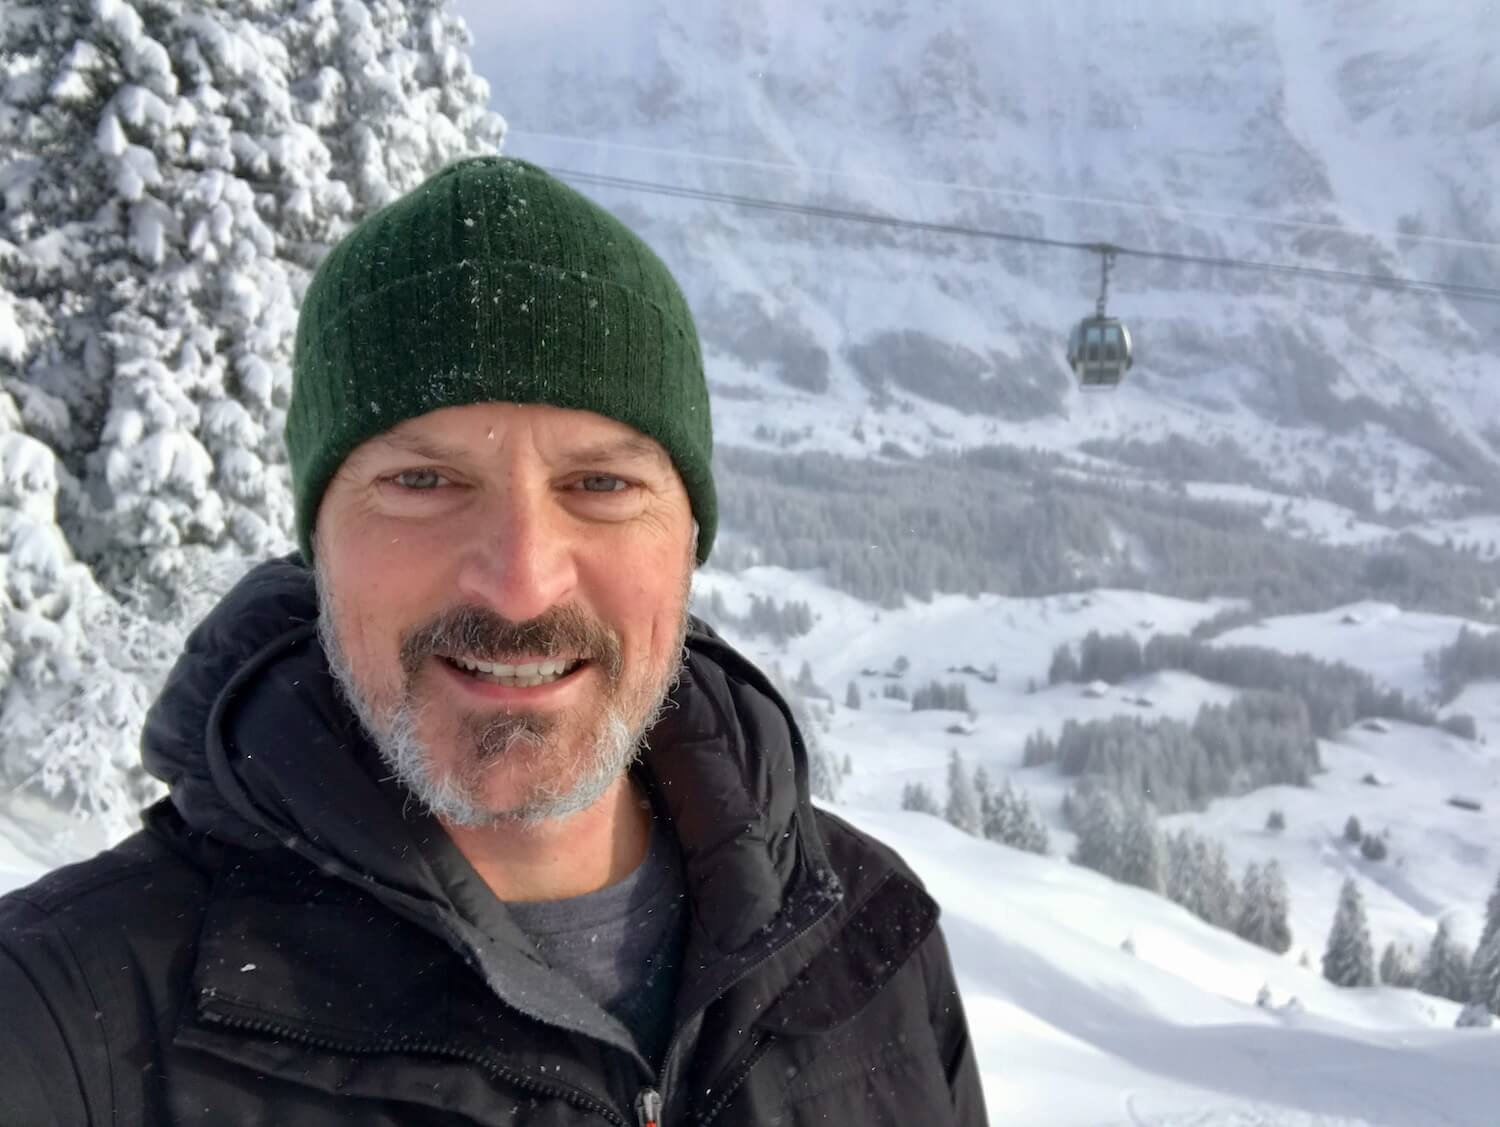 Close of selfie shot of Matthew Kessi with a ski gondola moving in the background. There are snow covered trees and a valley below in the background with snow covered Swiss chalets and the base of another rocky Alpine peak.